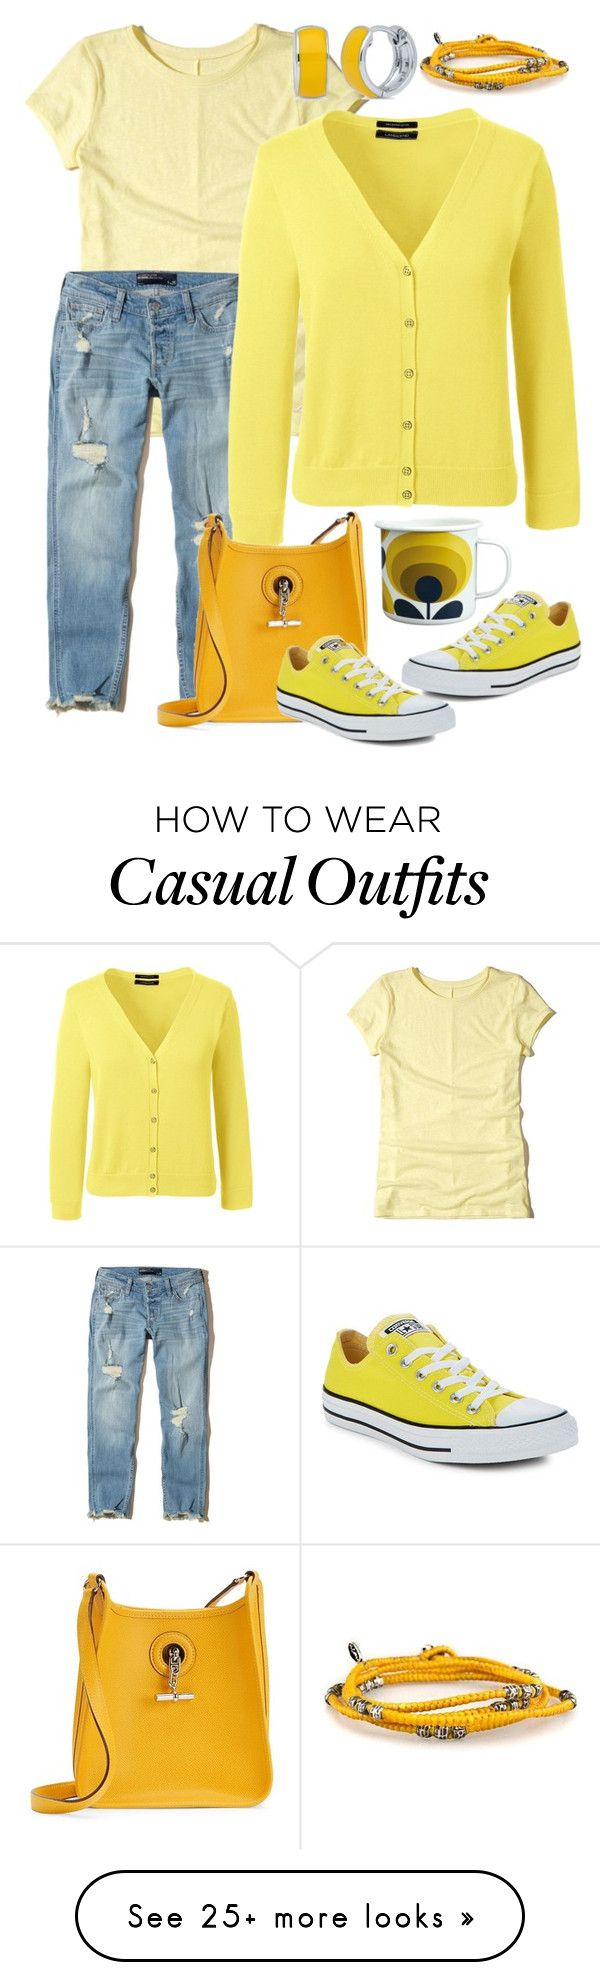 """""""Coffee Casual"""" by naviaux on Polyvore featuring Hollister Co., Lands' End, Hermès, Converse, Orla Kiely and BERRICLE"""